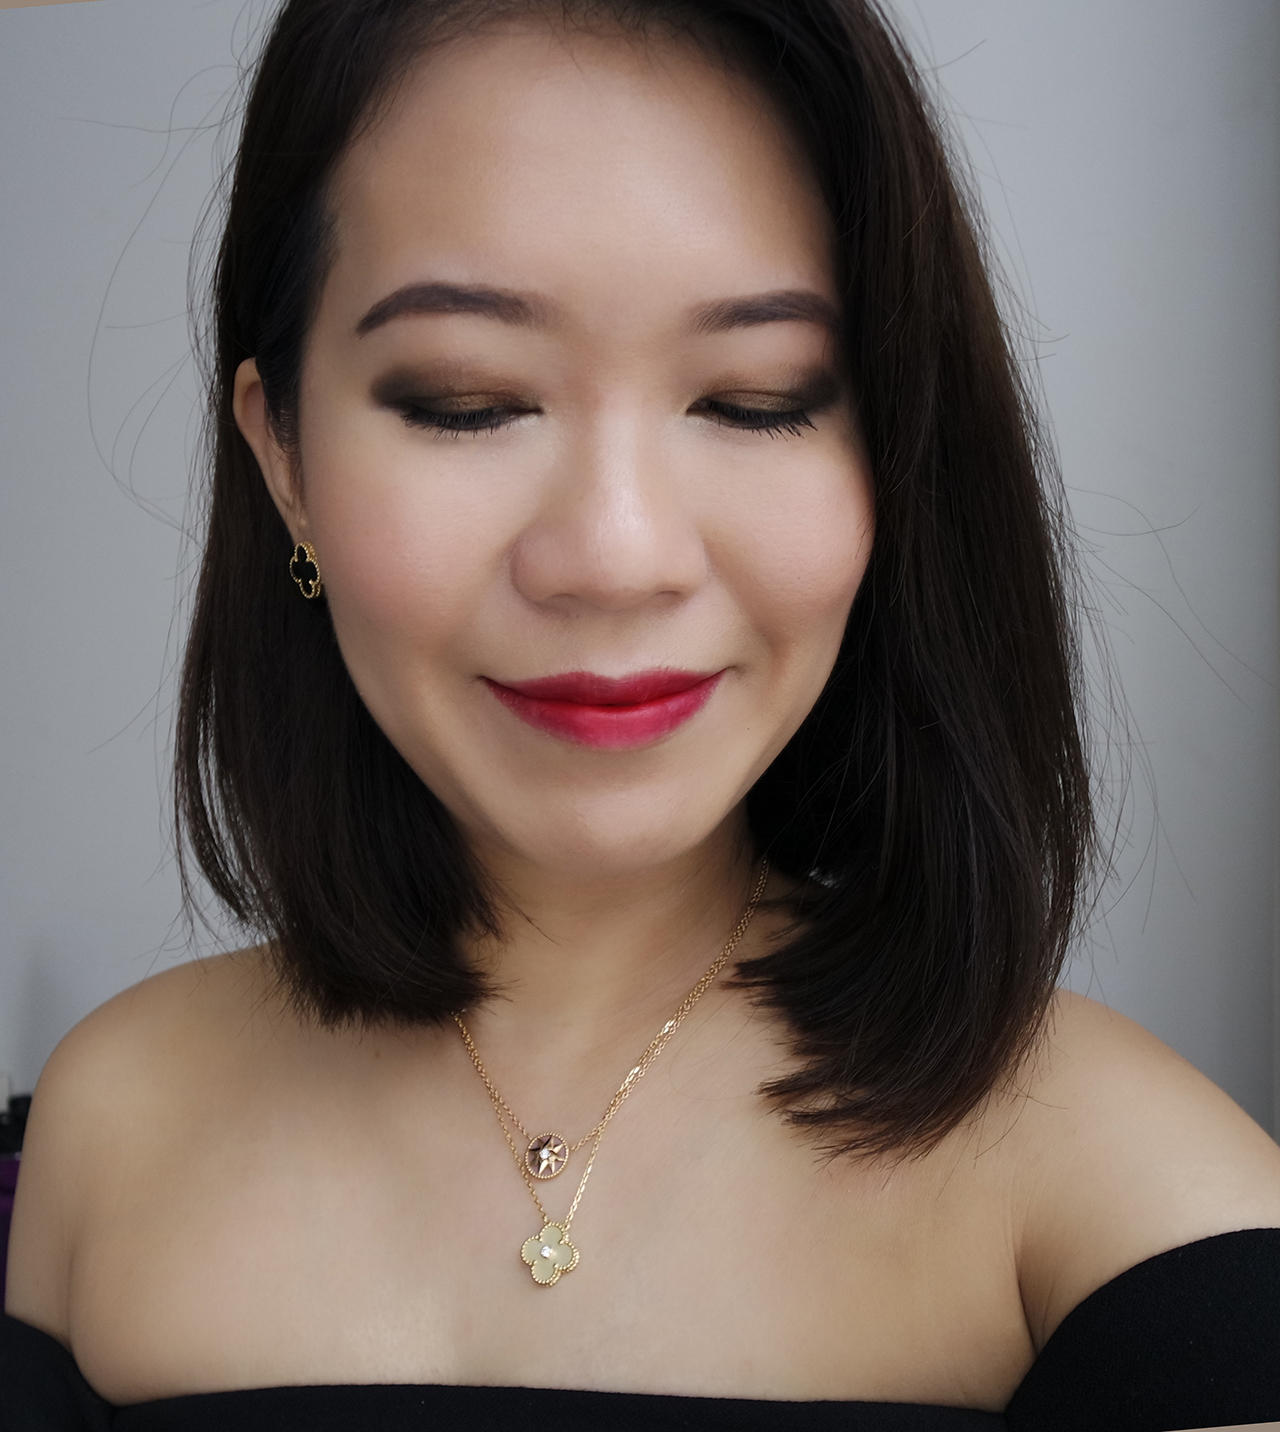 Evening makeup look from Chanel Le Libre Maximalisme